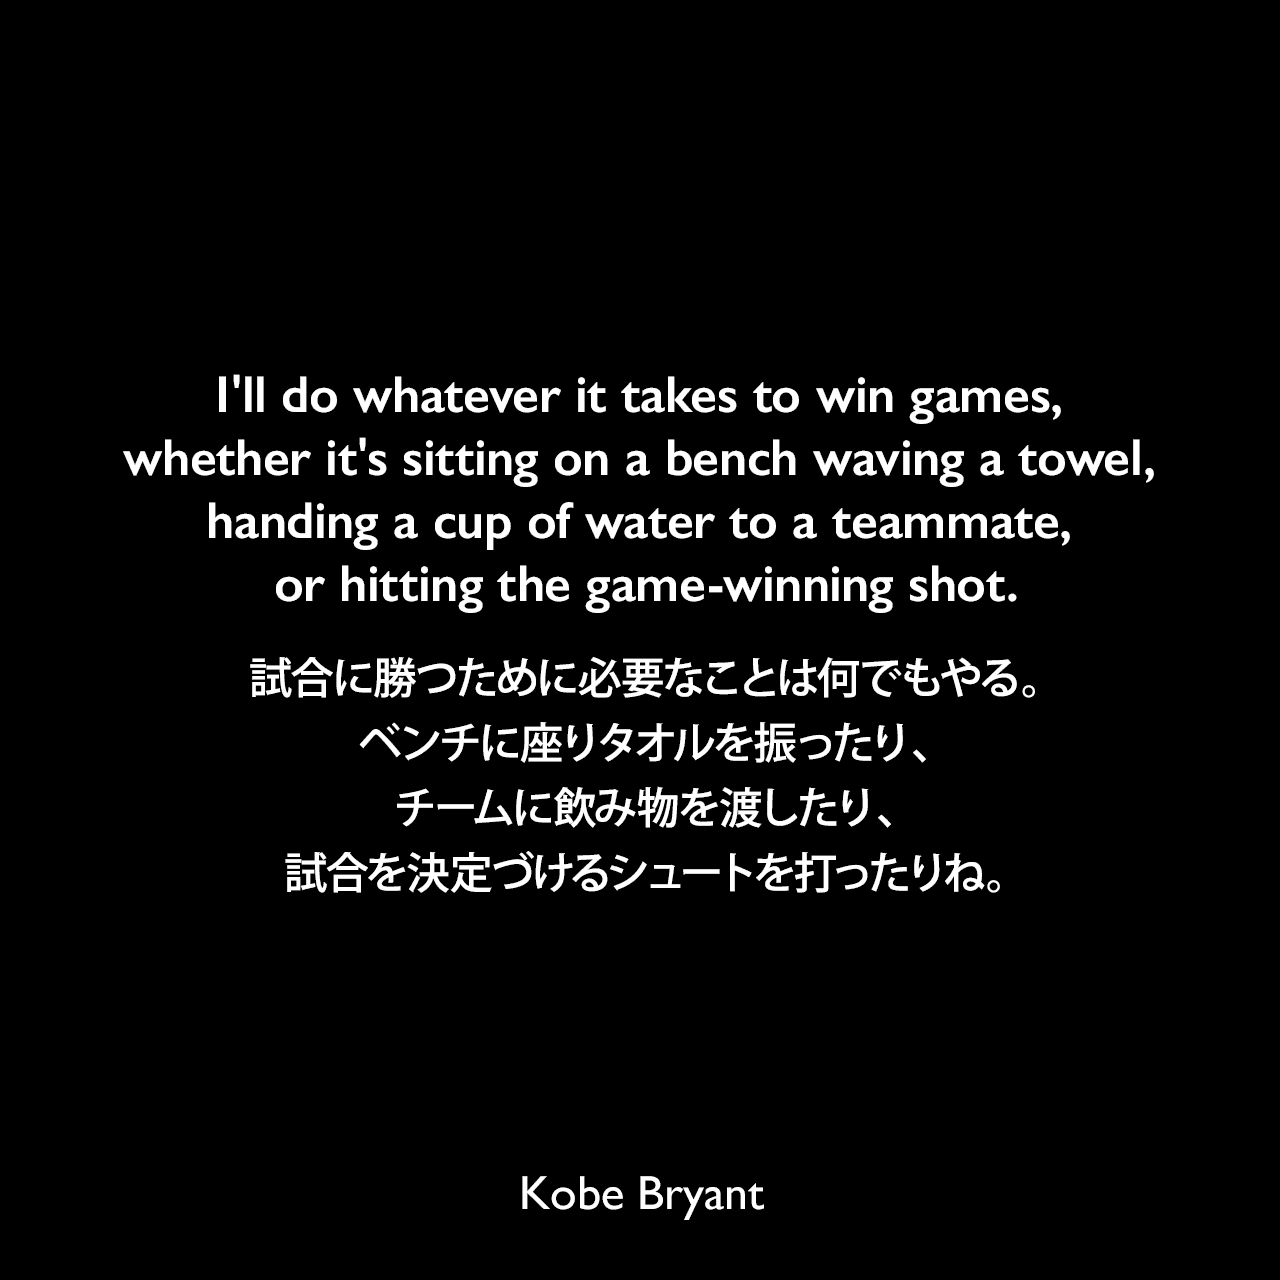 I'll do whatever it takes to win games, whether it's sitting on a bench waving a towel, handing a cup of water to a teammate, or hitting the game-winning shot.試合に勝つために必要なことは何でもやる。ベンチに座りタオルを振ったり、チームに飲み物を渡したり、試合を決定づけるシュートを打ったりね。Kobe Bryant